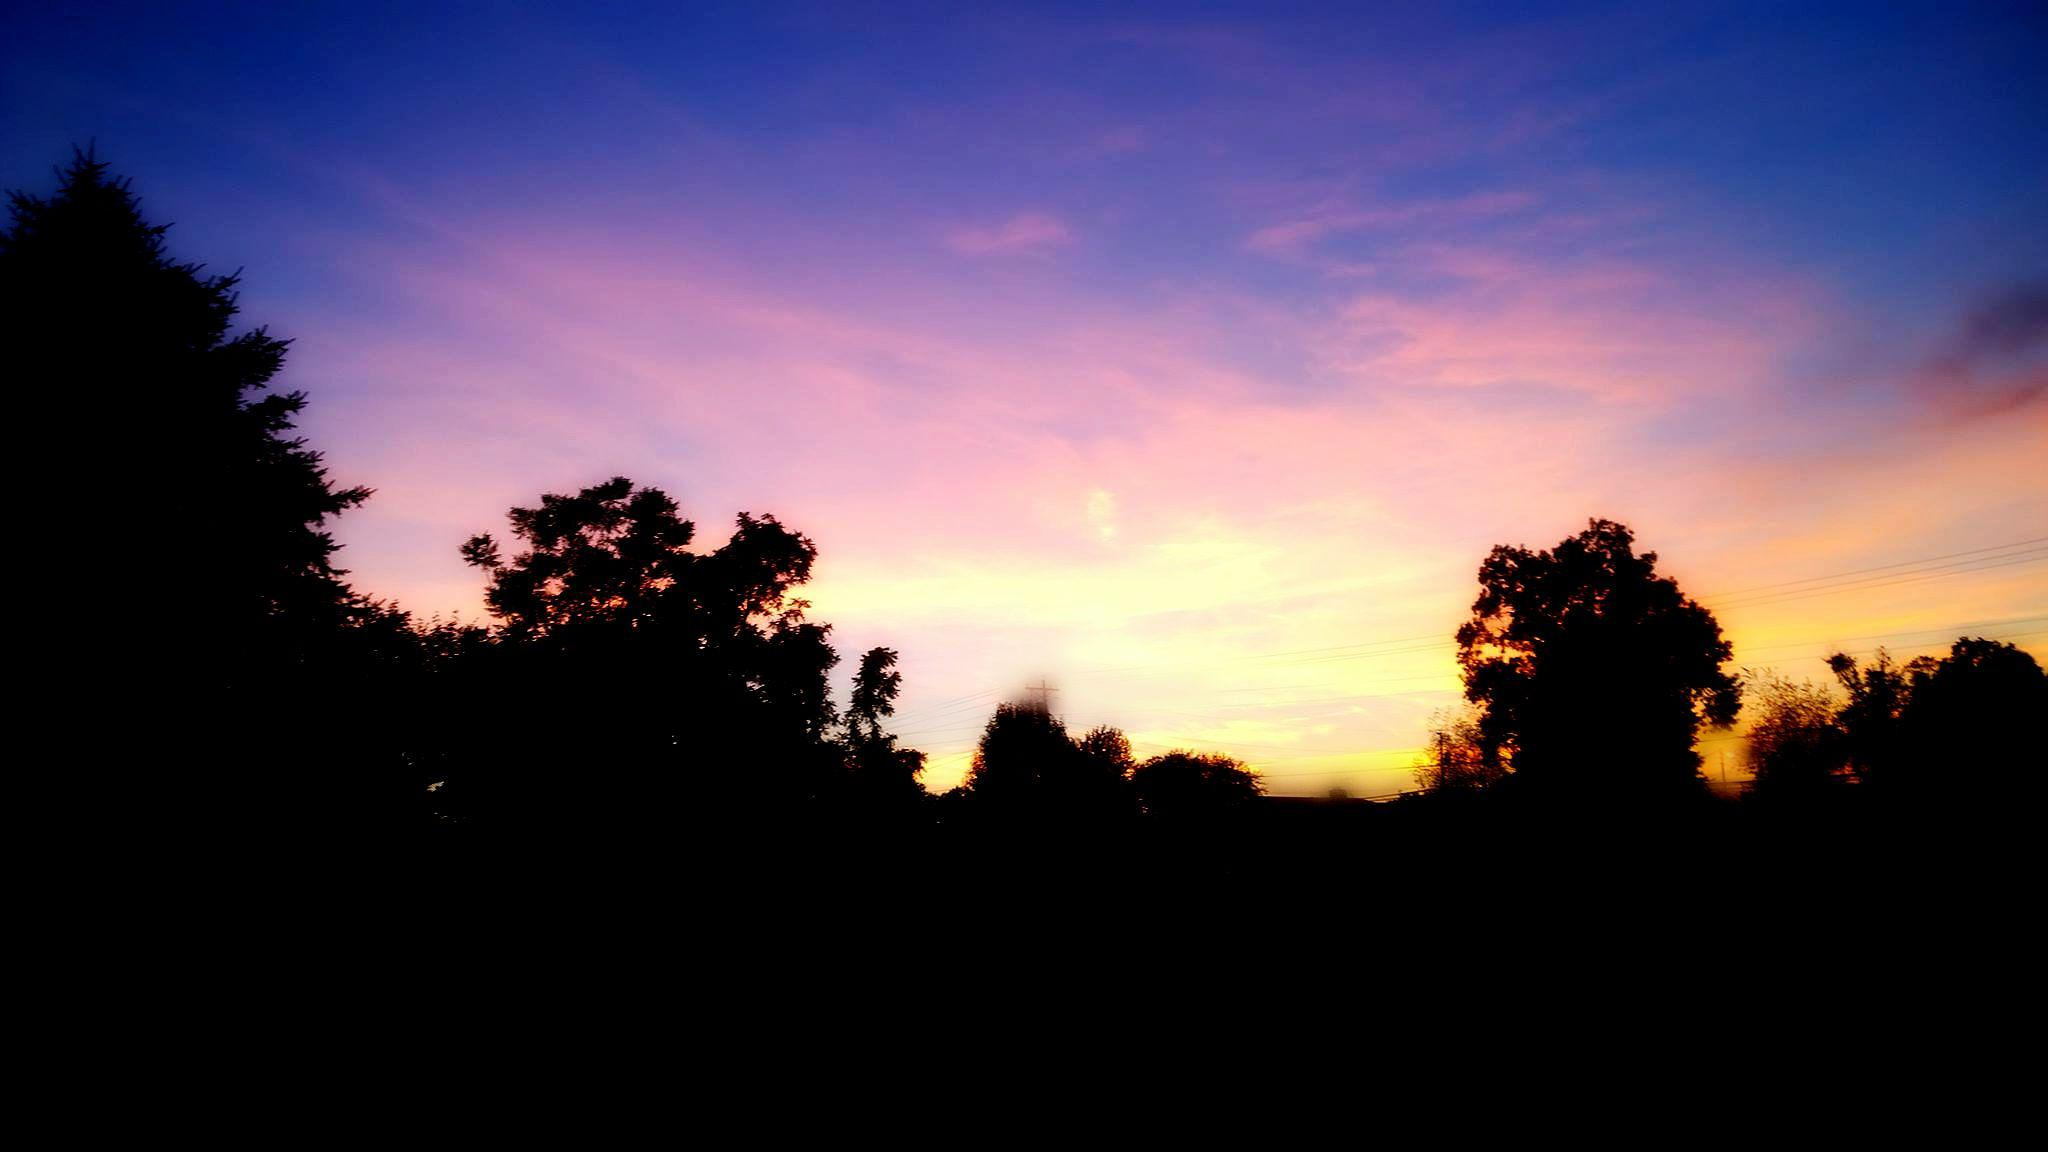 Sunset colors by marie.short.18